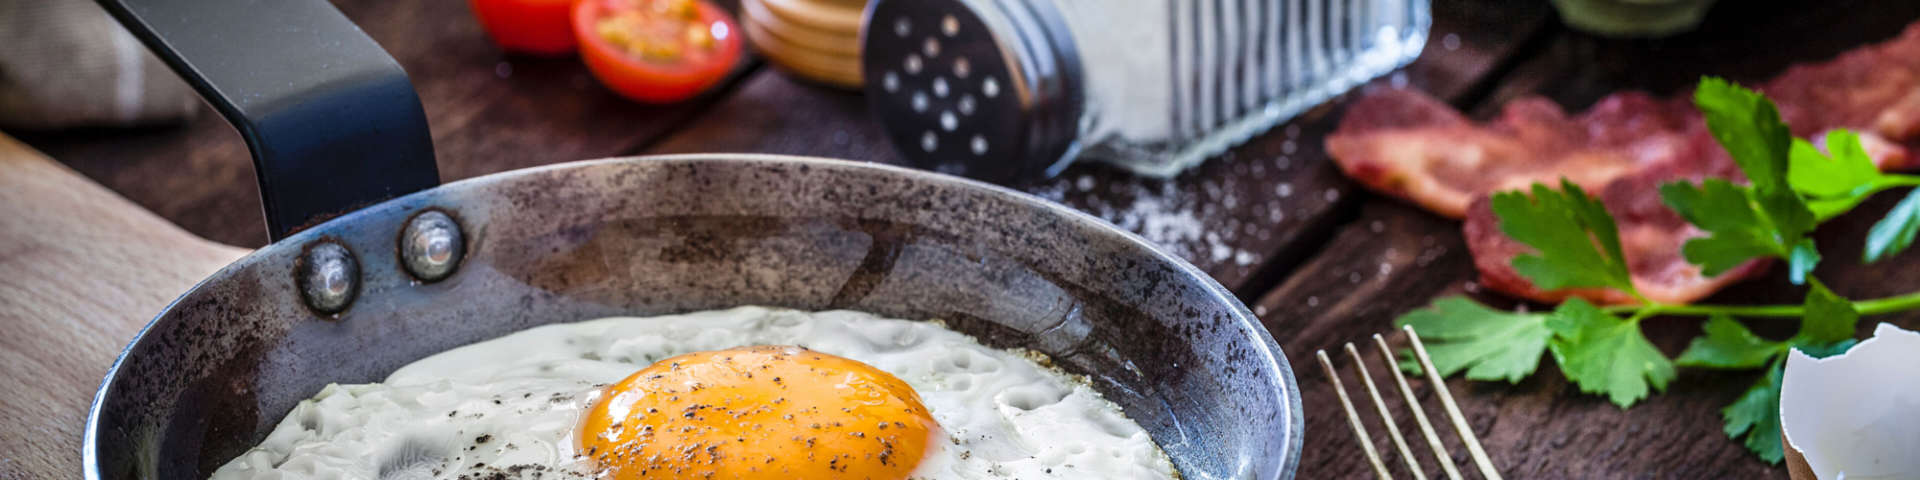 A sunny side up egg in a frying pan.